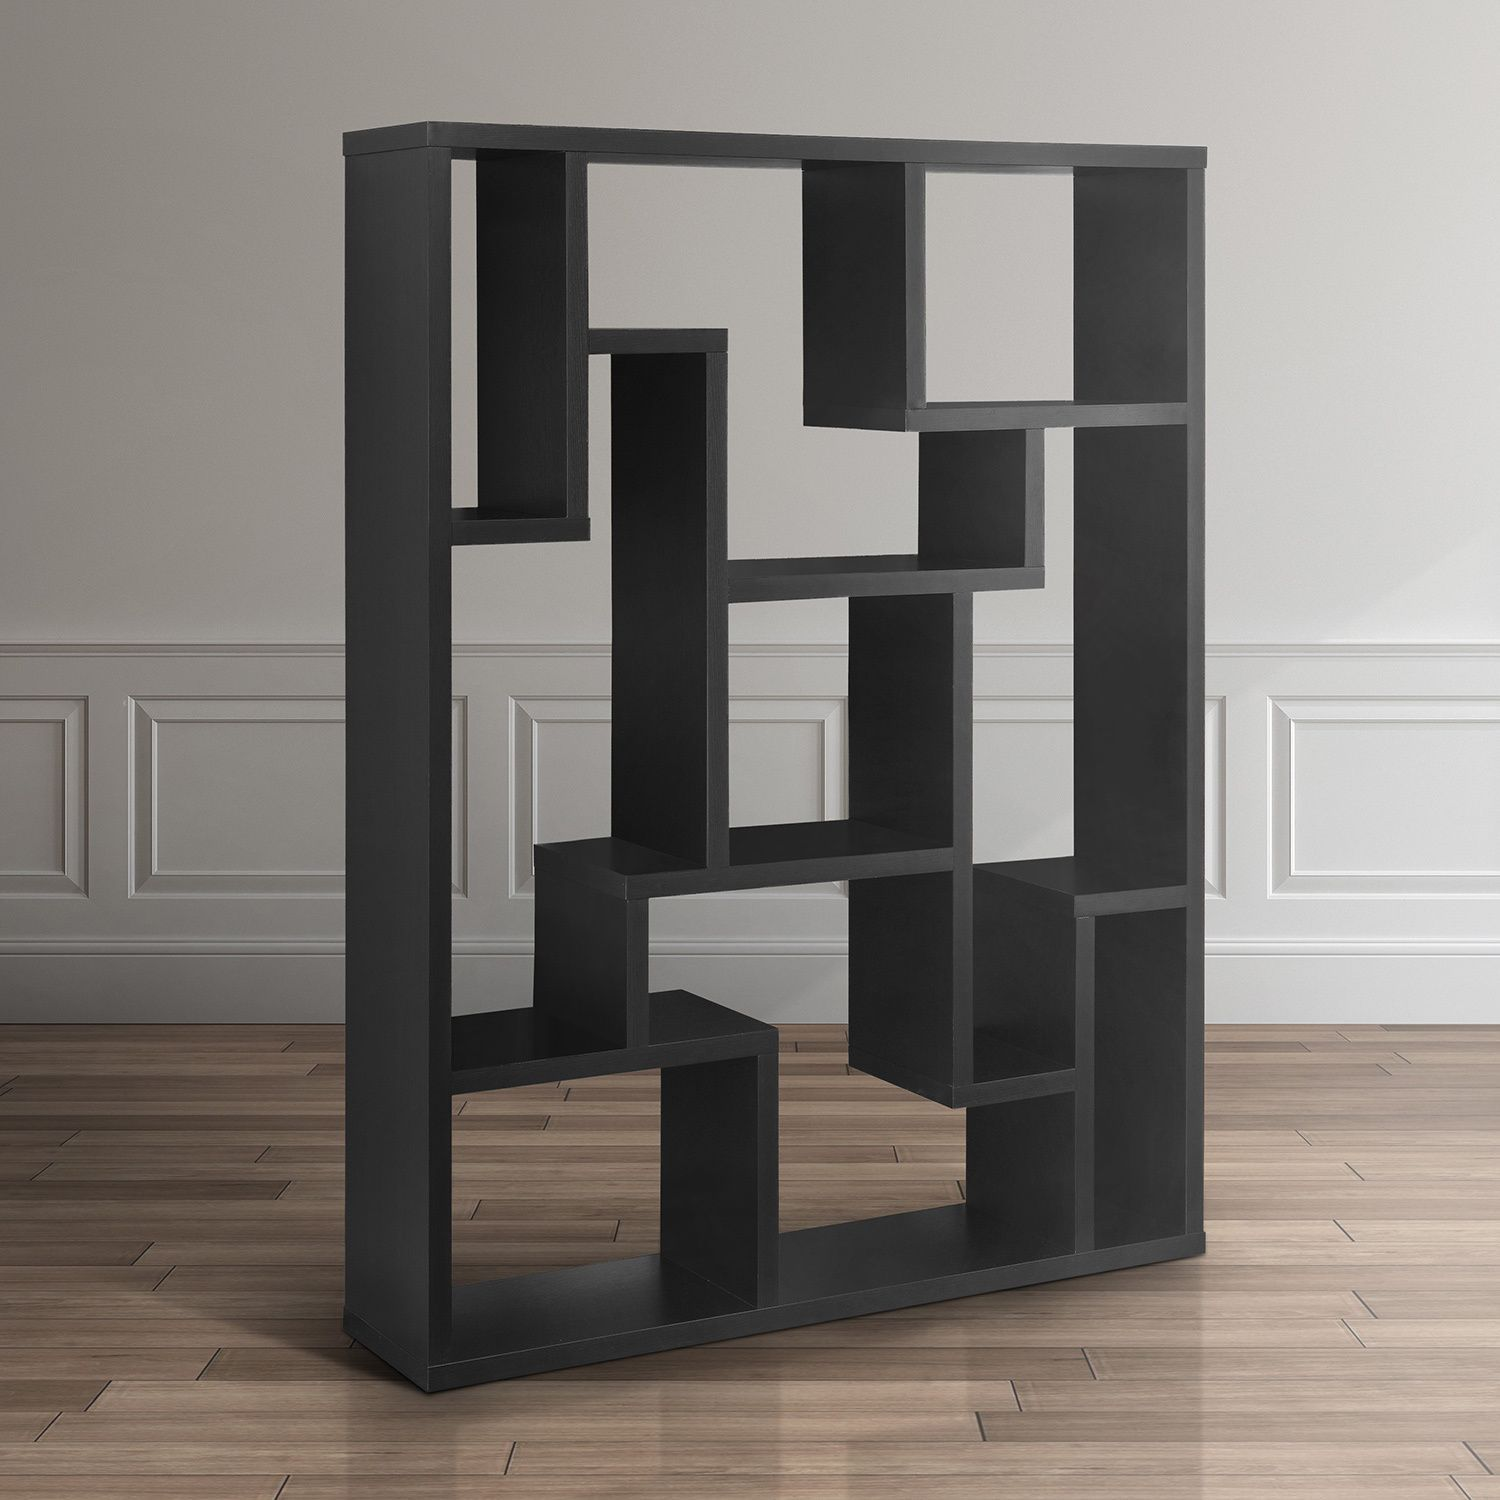 Furniture Of America Mandy Bookcase/ Room Divider (Black)